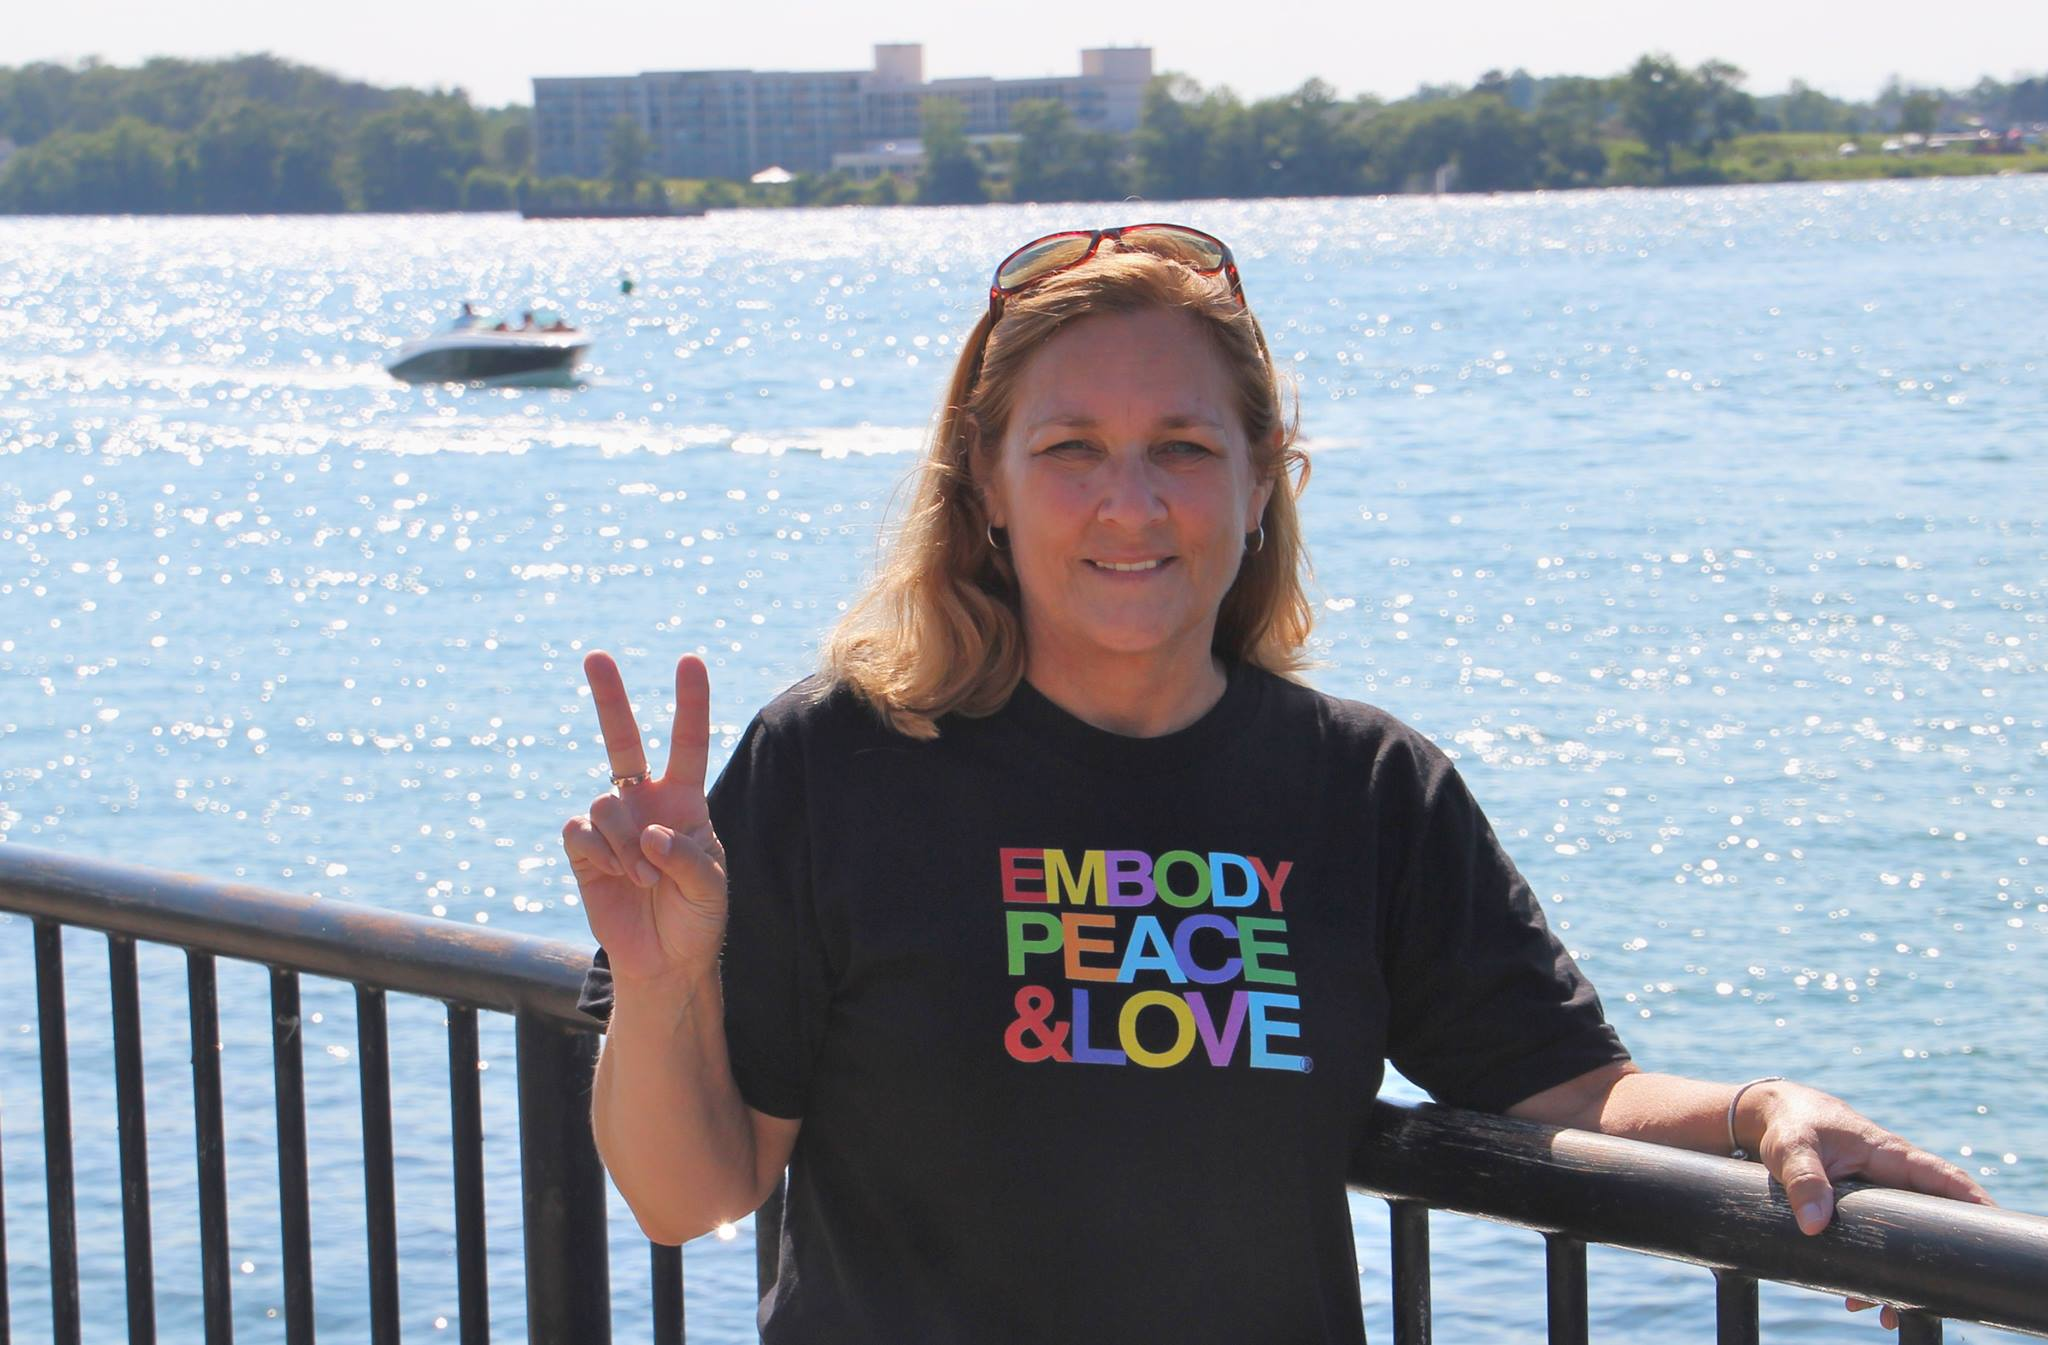 Women's Embody Peace and Love T-shirt on Gildan (regular fitting style)